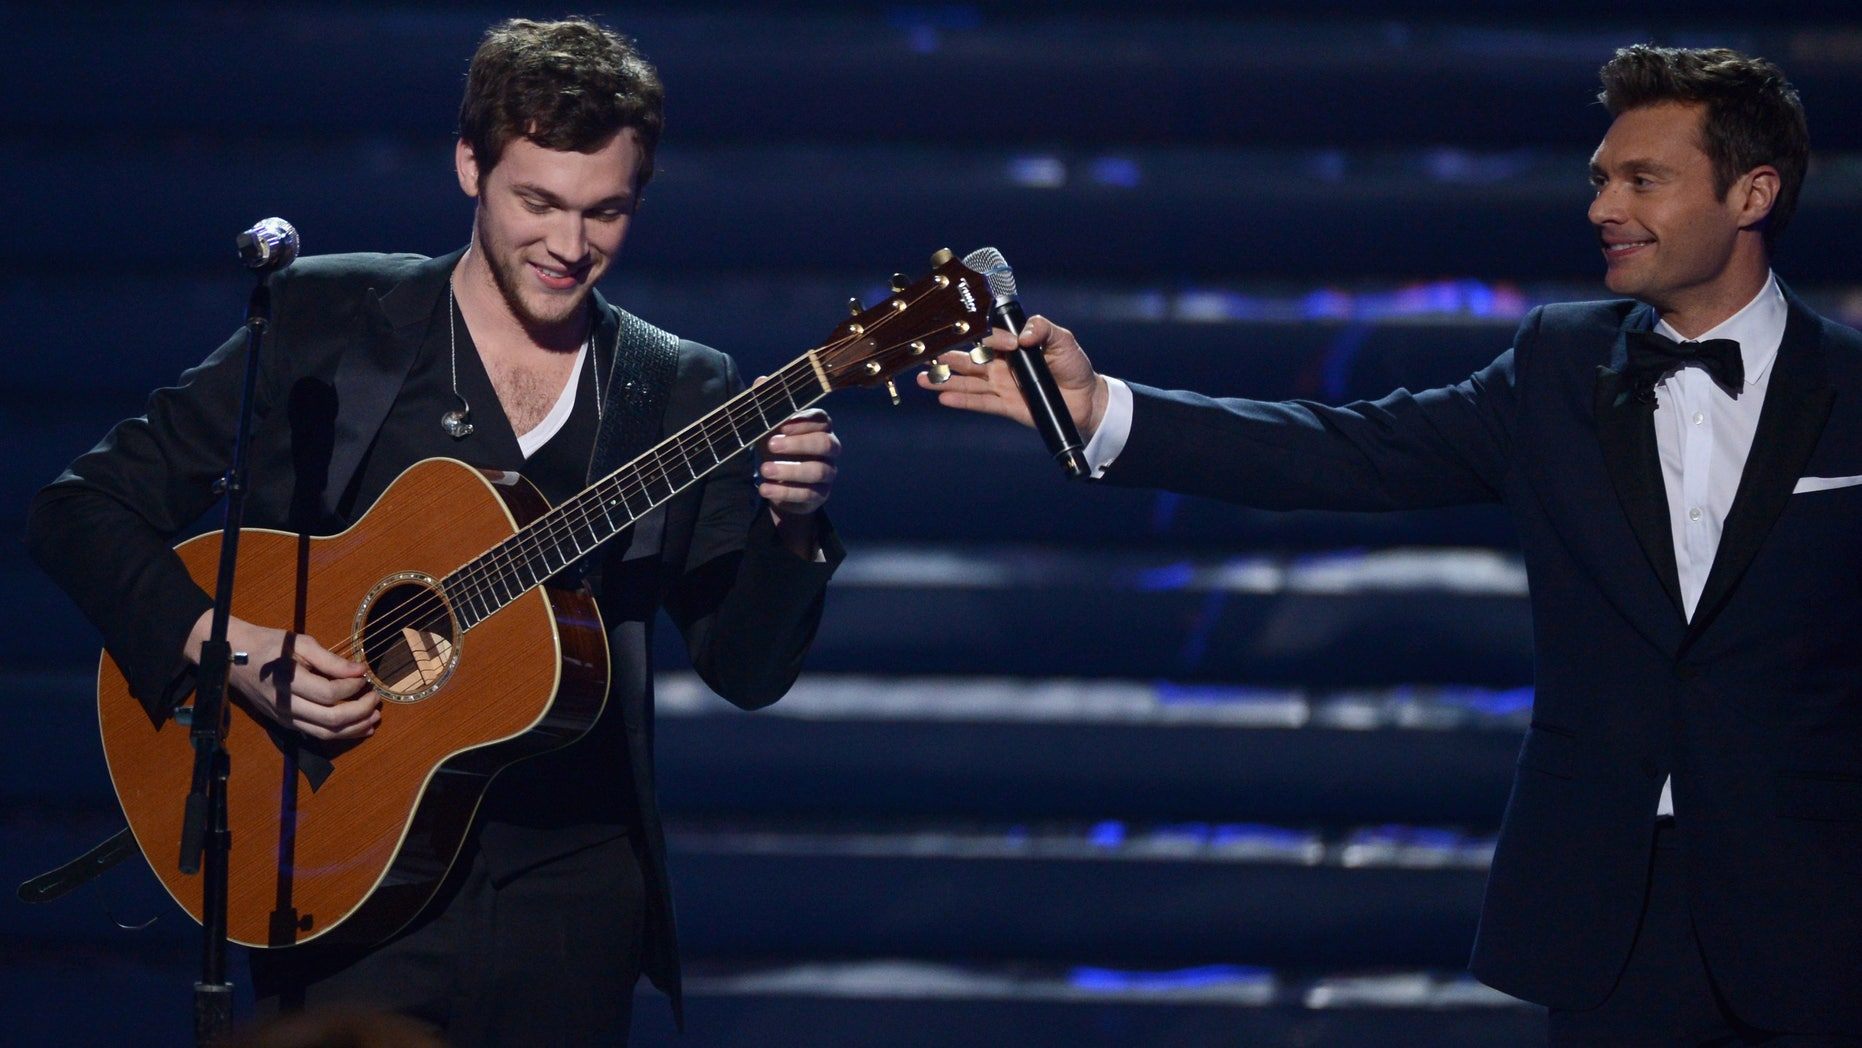 """May 23, 2012: Winner Phillip Phillips and host Ryan Seacrest speak onstage during Fox's """"American Idol 2012"""" results show at Nokia Theatre L.A. Live in Los Angeles, California."""